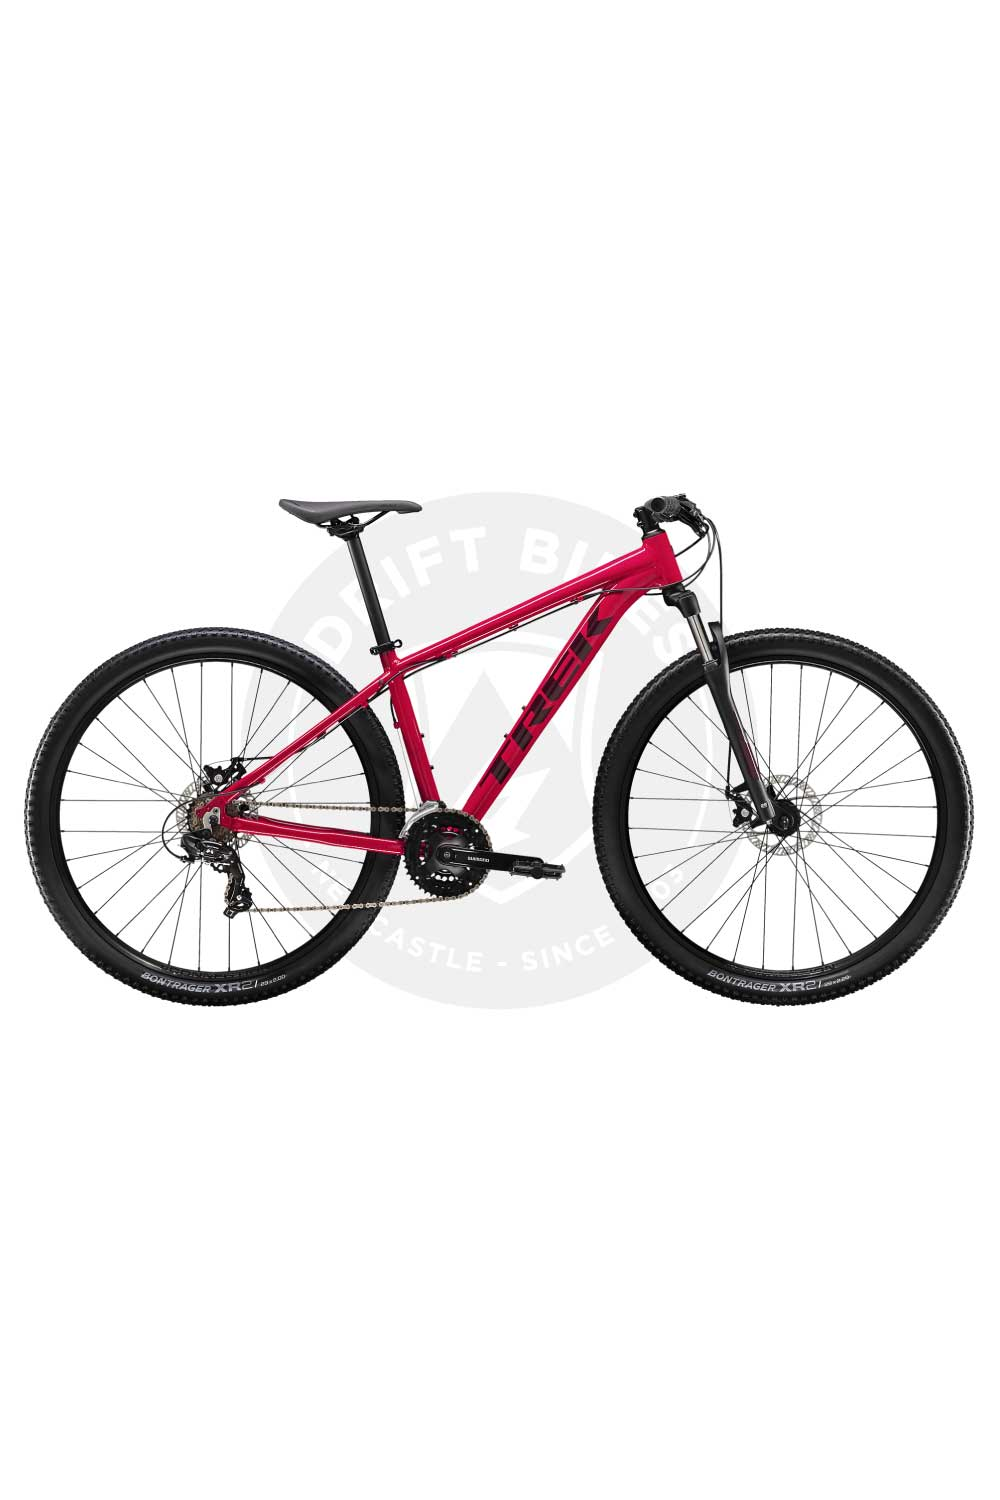 TREK Marlin 4 Hardtail Mountain Bike